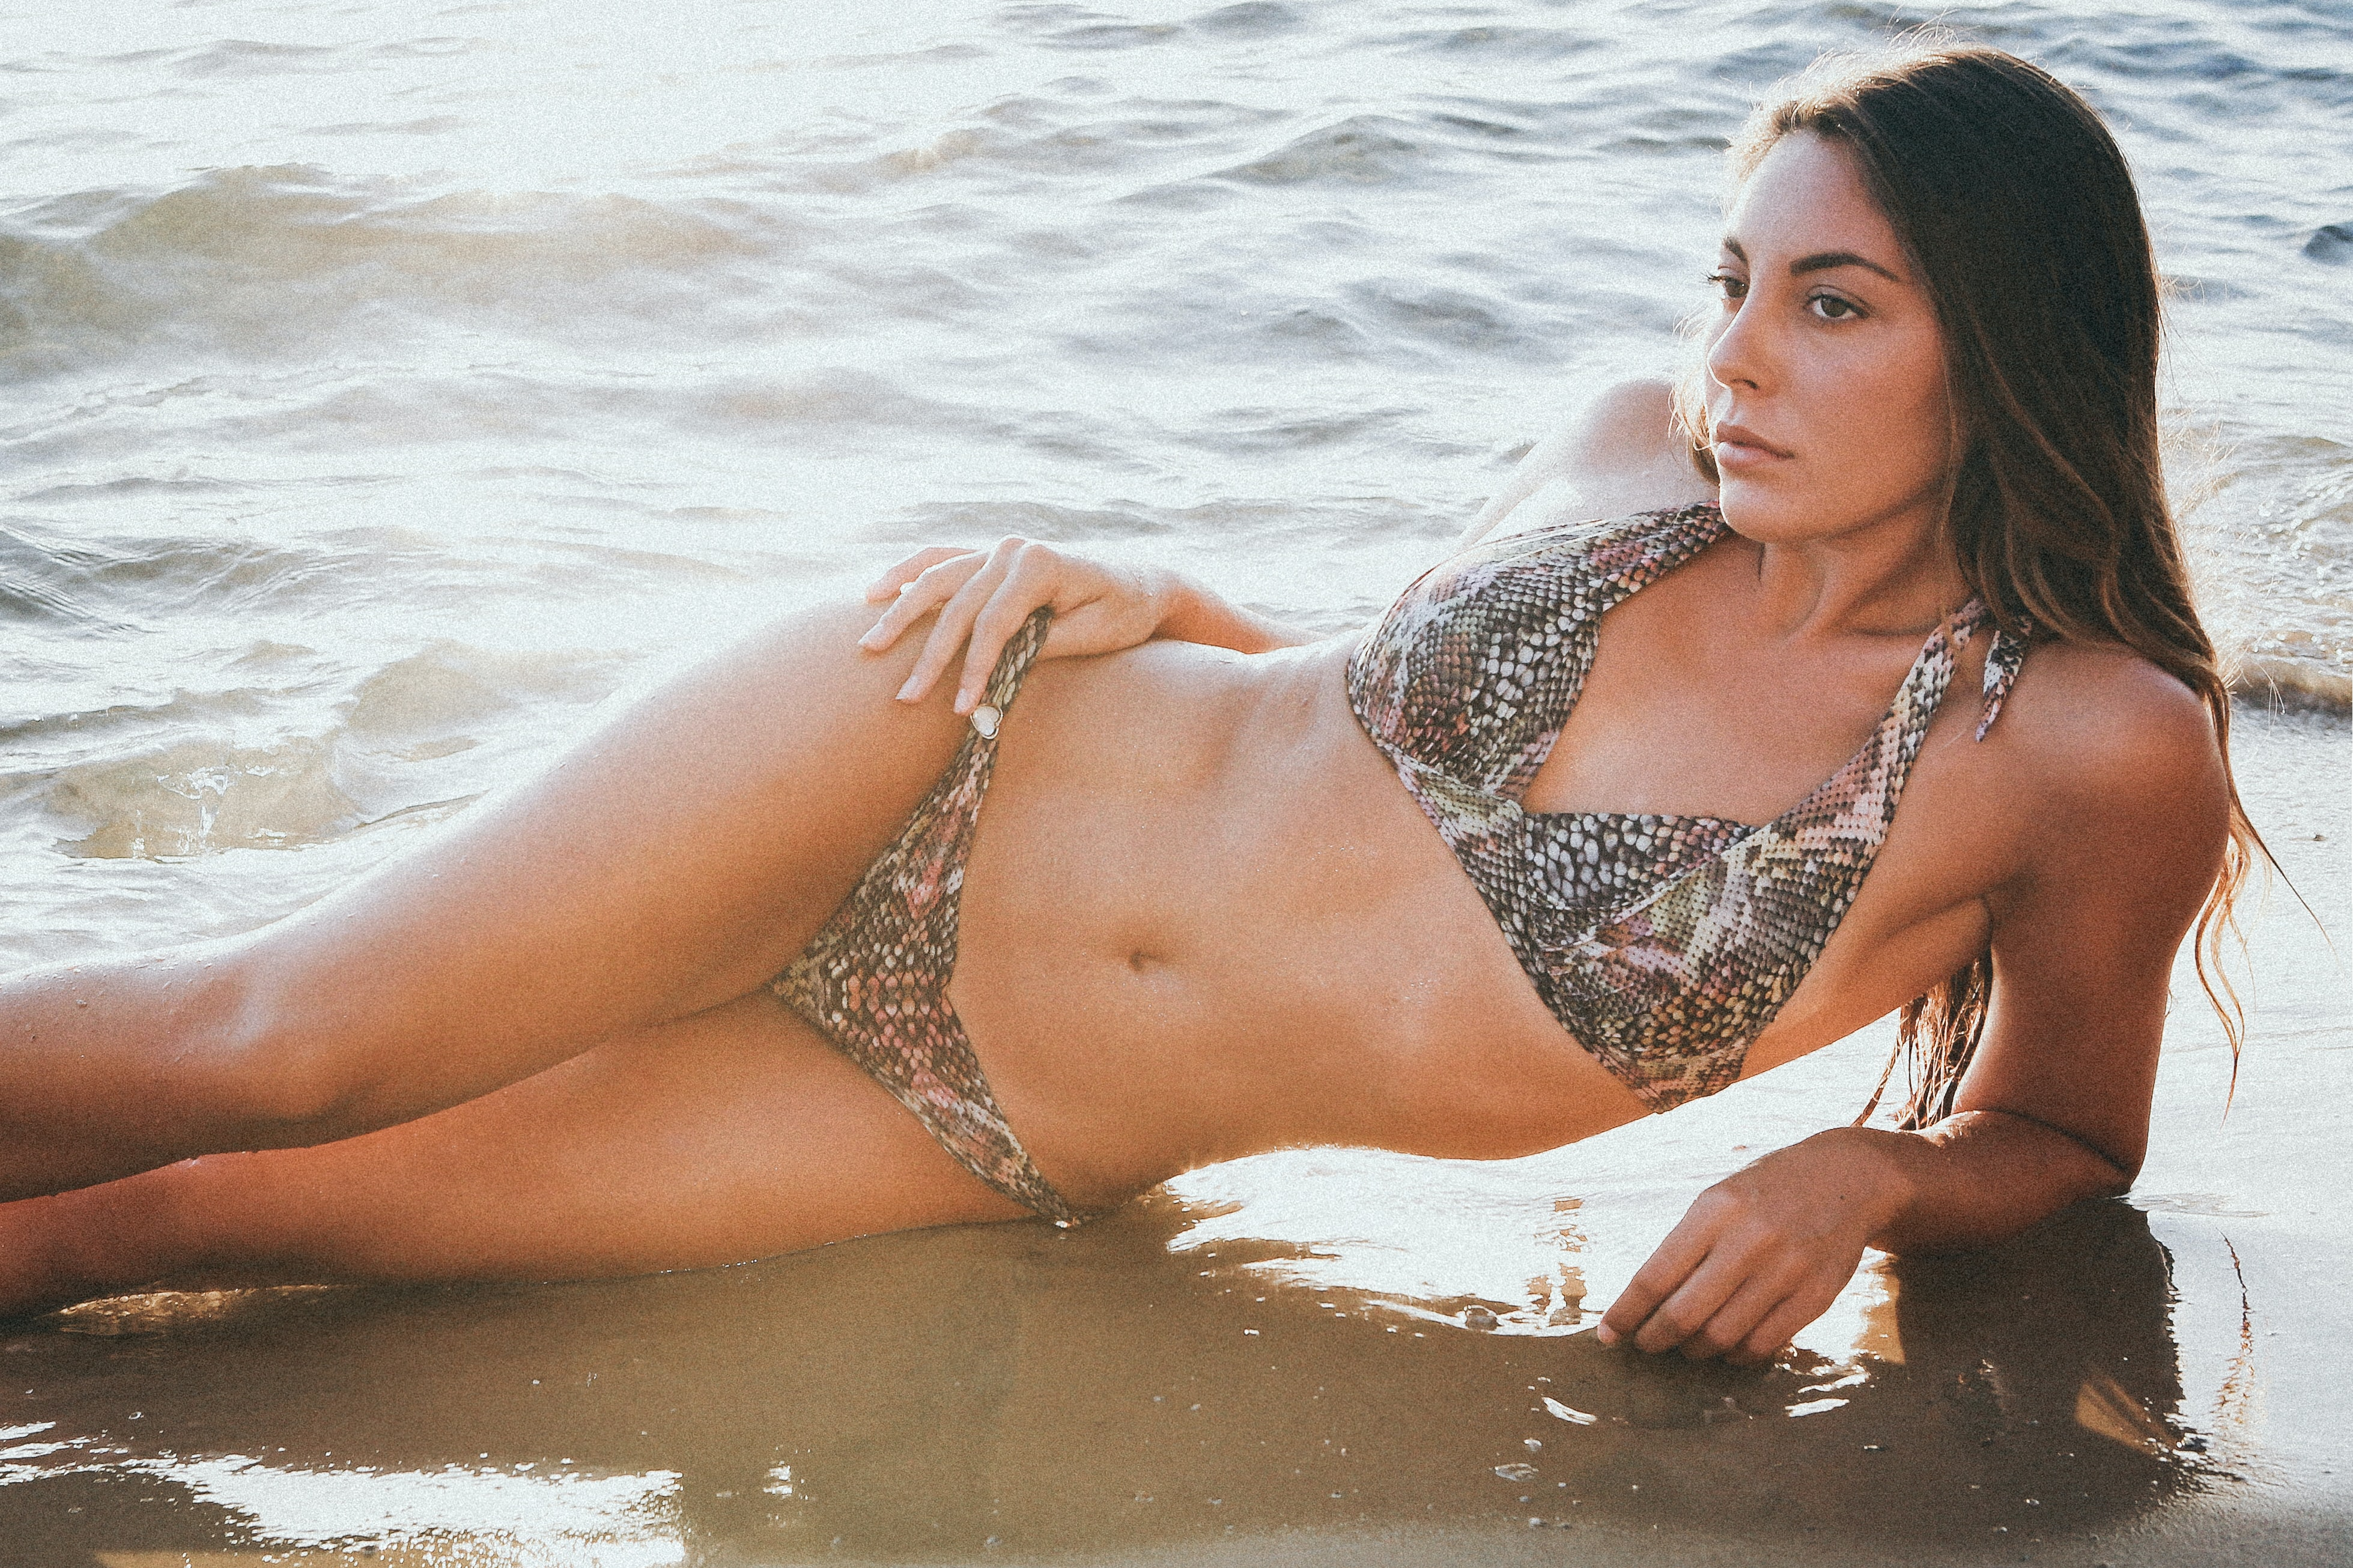 woman lying on wet sand wearing brown leopard bikini during daytime